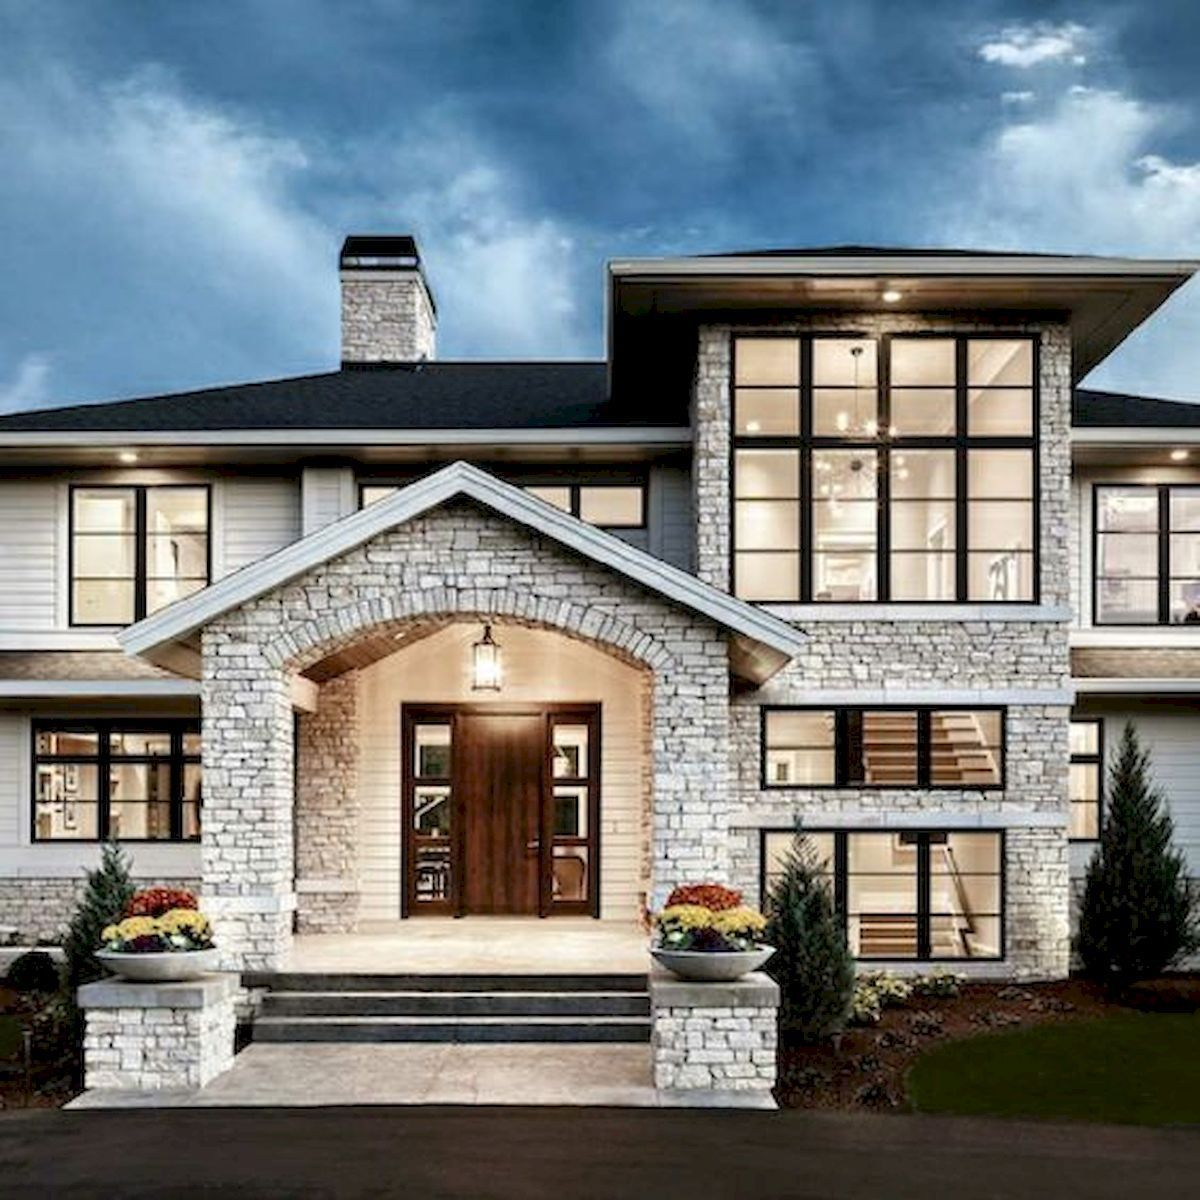 60 Most Popular Modern Dream House Exterior Design Ideas Dream Exterior Modern Popular Most Ideaboz In 2020 House Designs Exterior House Styles House Exterior